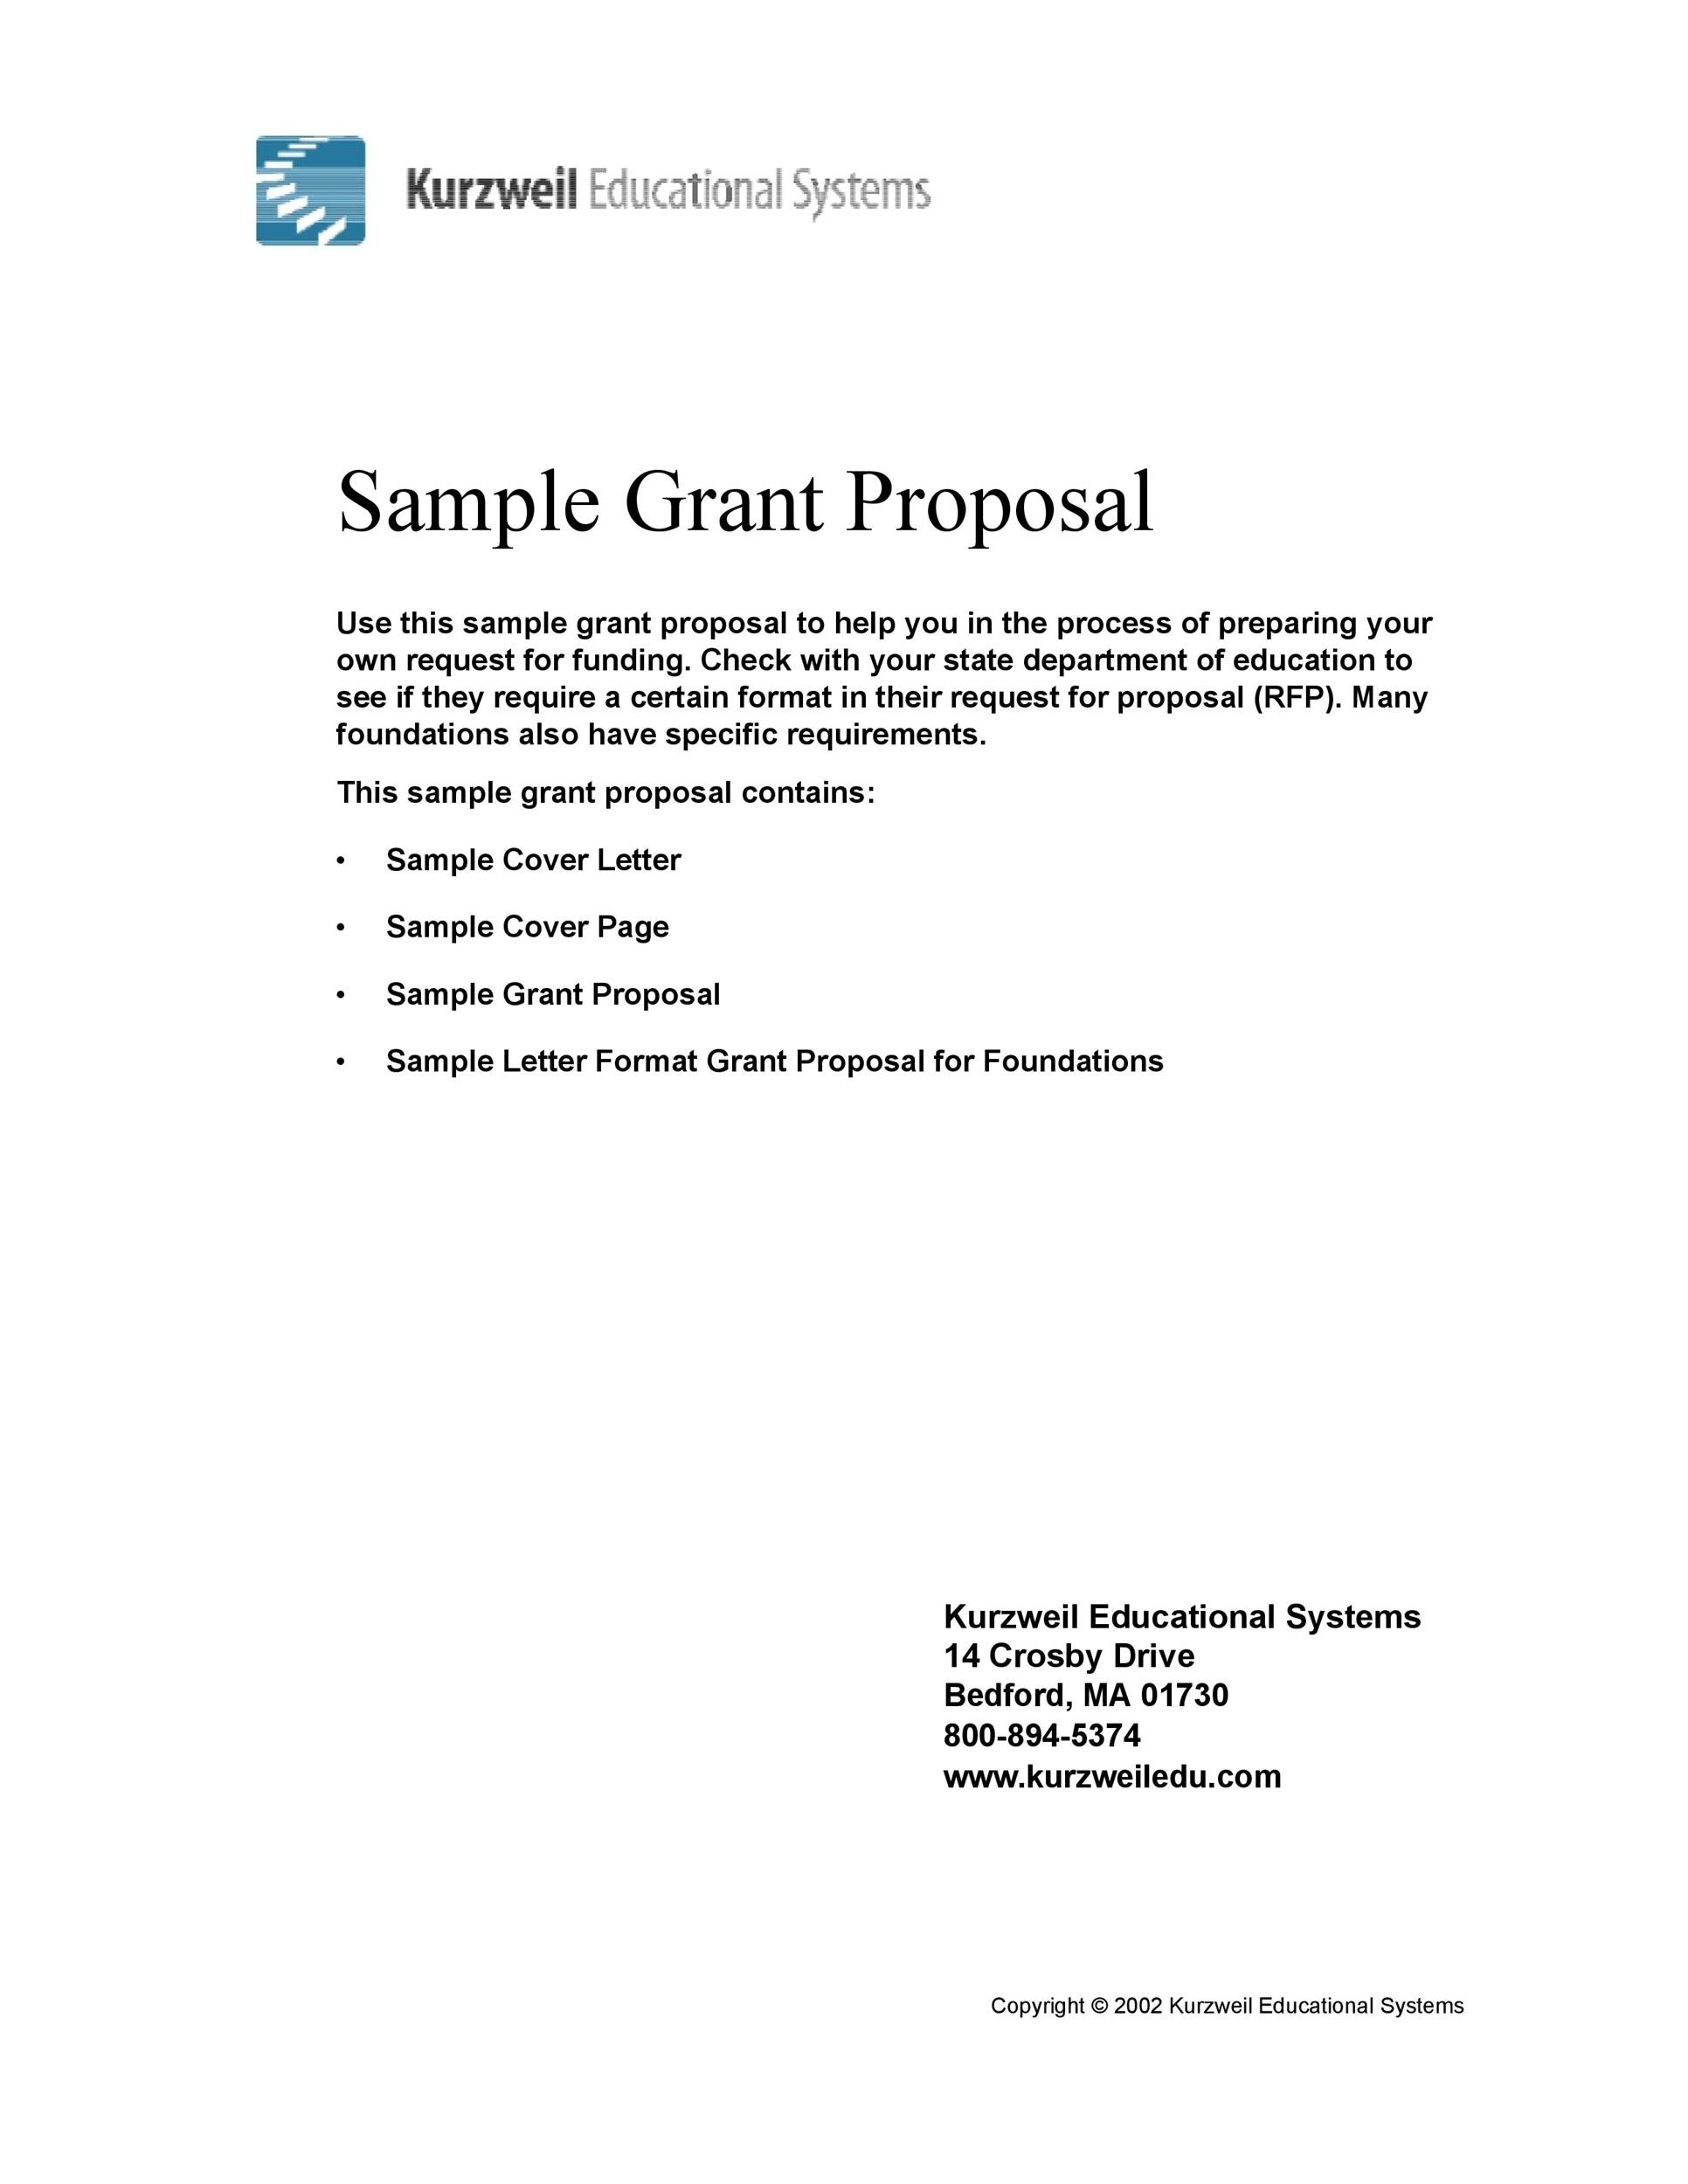 40 grant proposal templates nsf non profit research for Proposal template for funding request